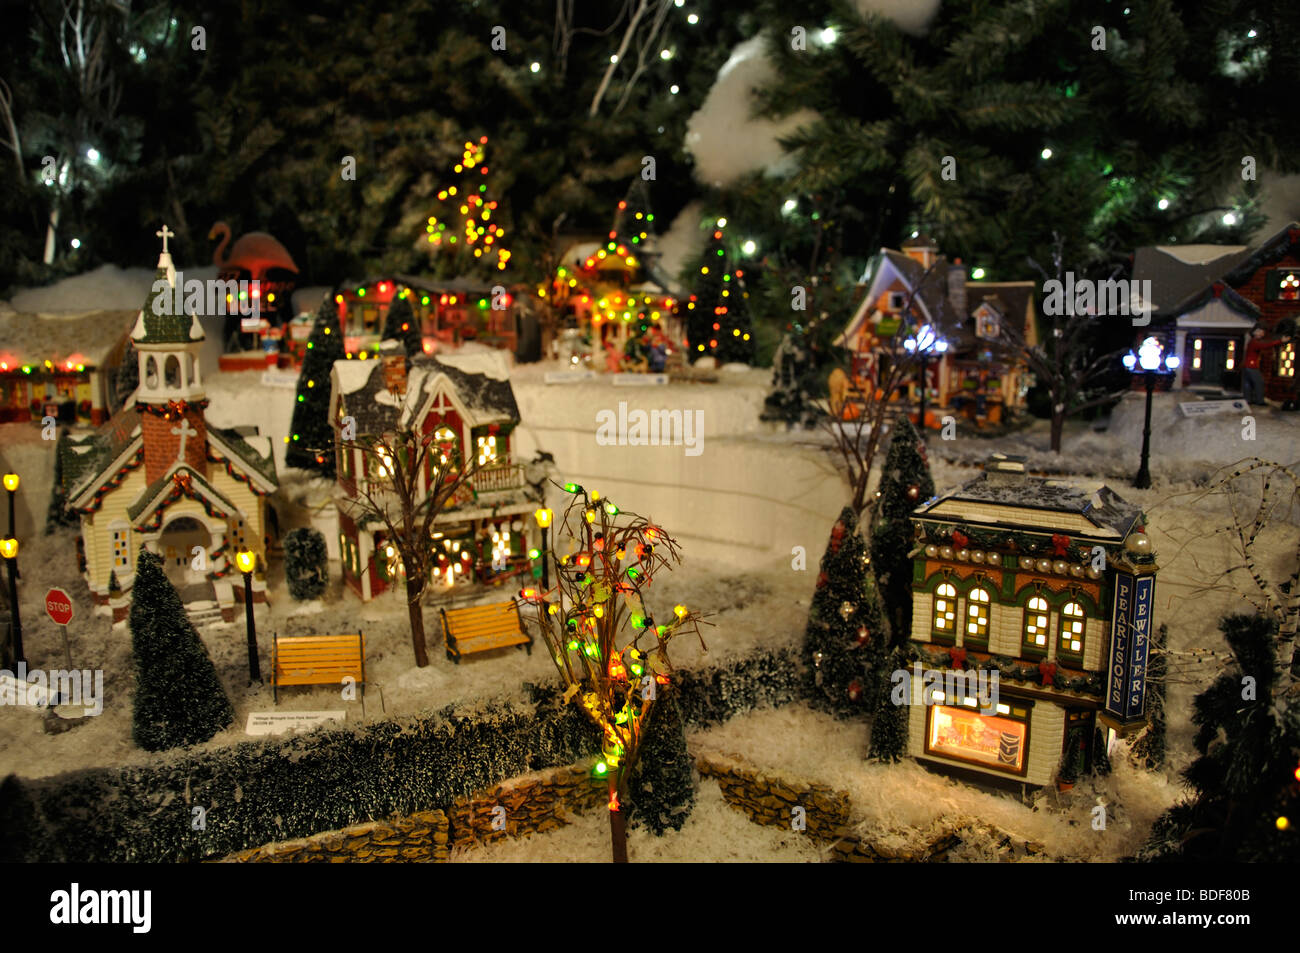 miniature christmas village toy houses decorations stock image - Miniature Christmas Town Decorations